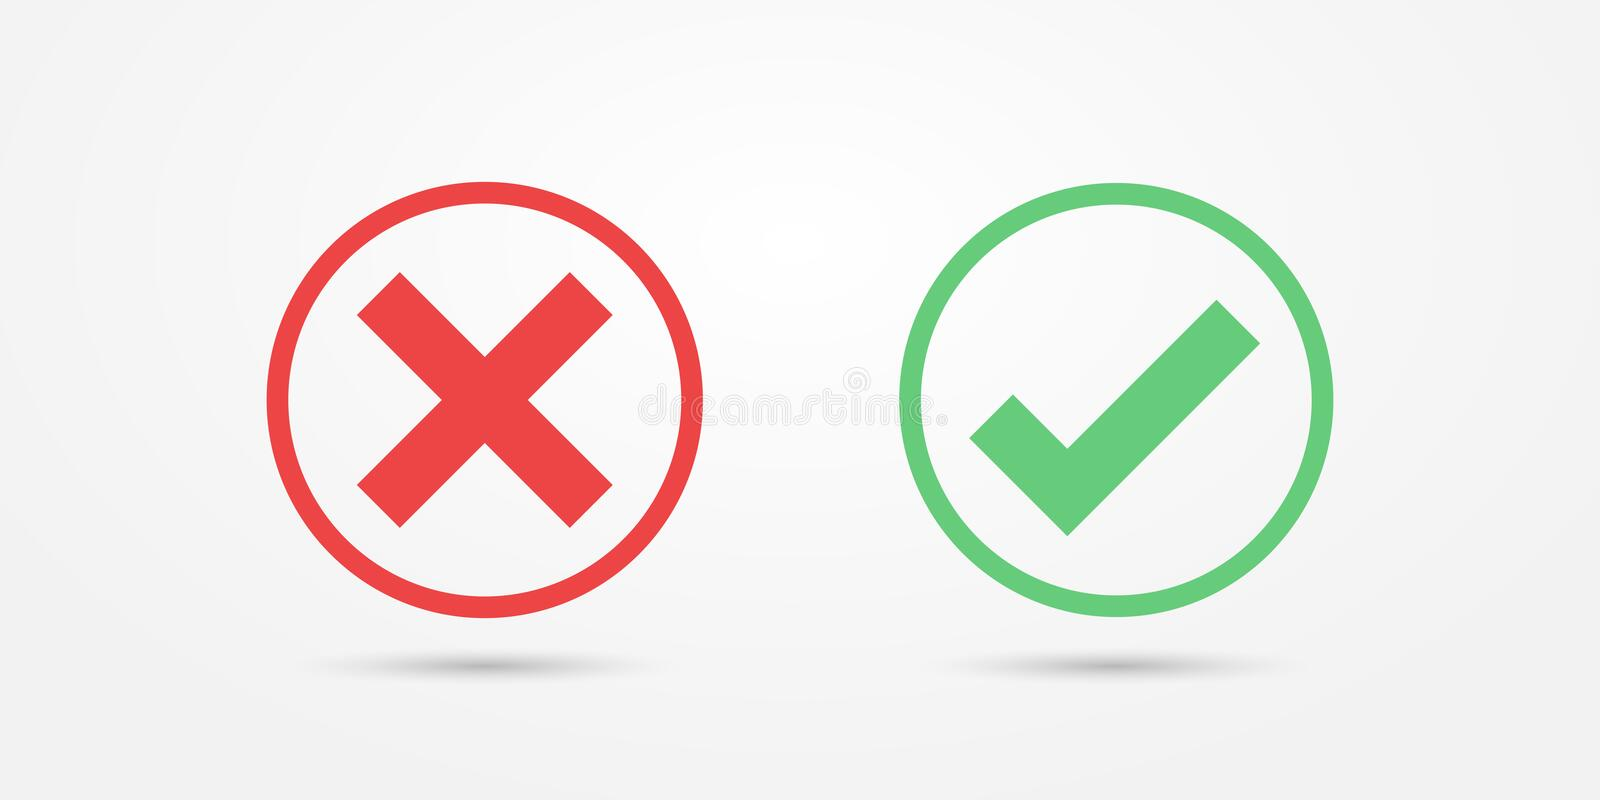 Red and green circle icon check mark icon isolated on transparent background. Approve and cancel symbol for design project. Red and green circle icon check mark stock illustration